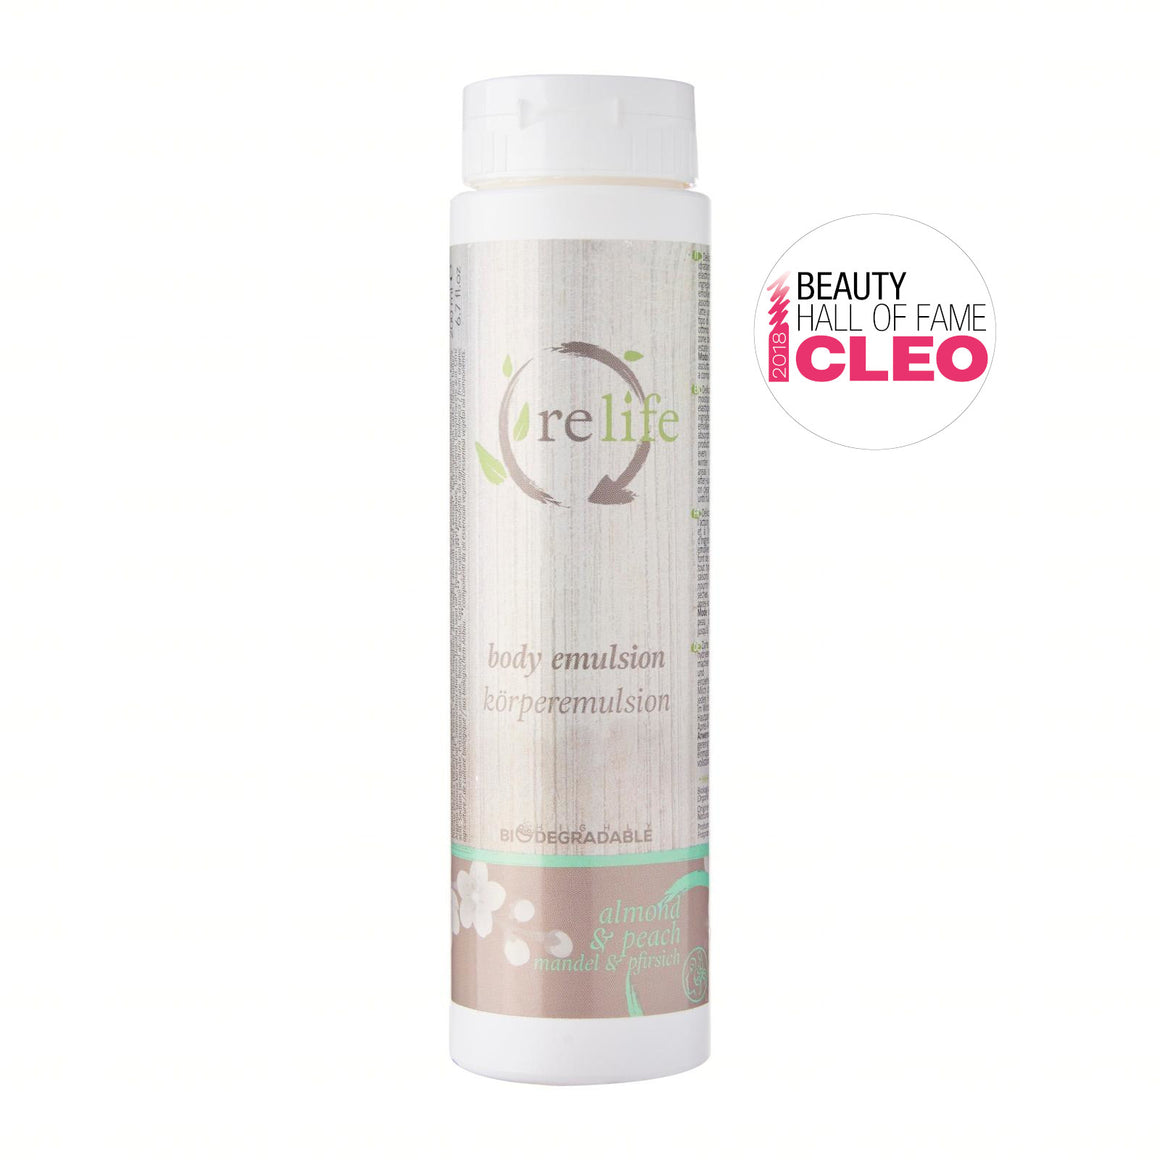 Relife Body Emulsion - Aldha